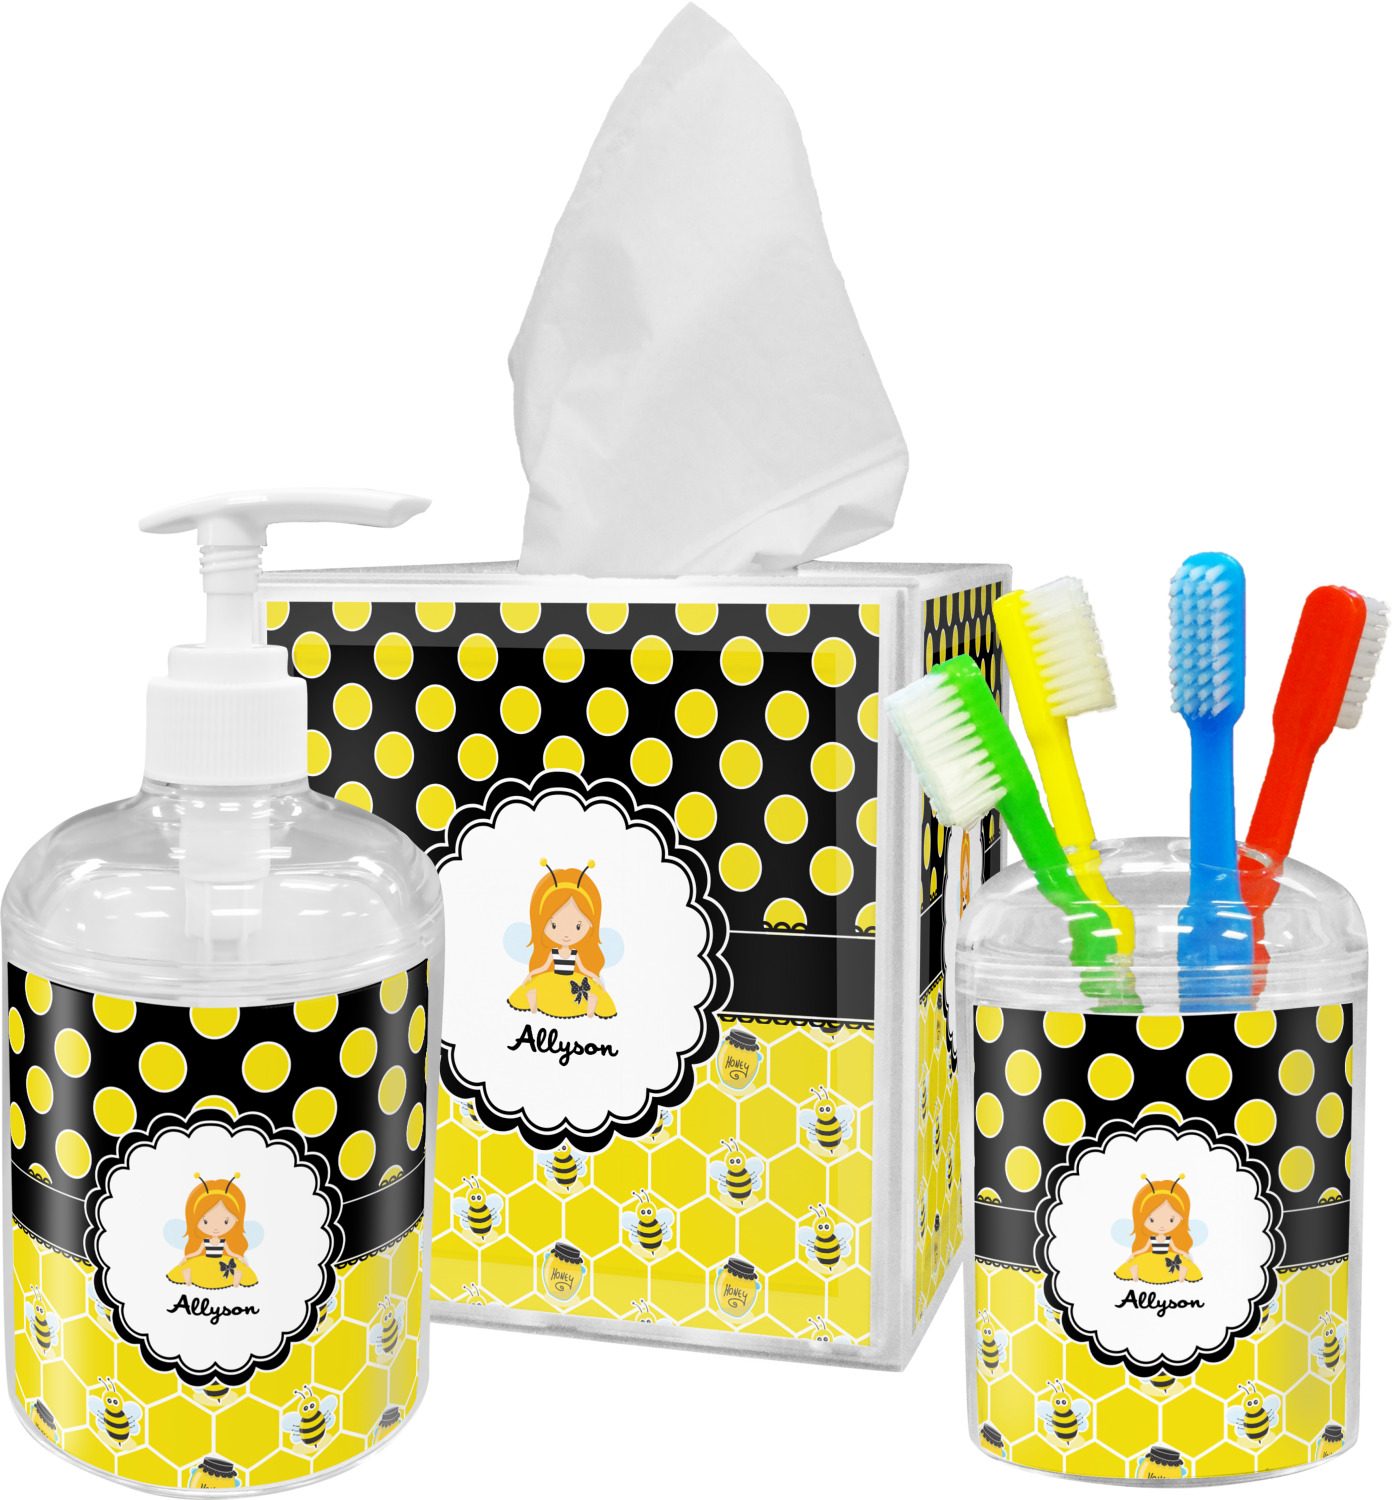 Honeycomb Bees Polka Dots Bathroom Accessories Set Personalized